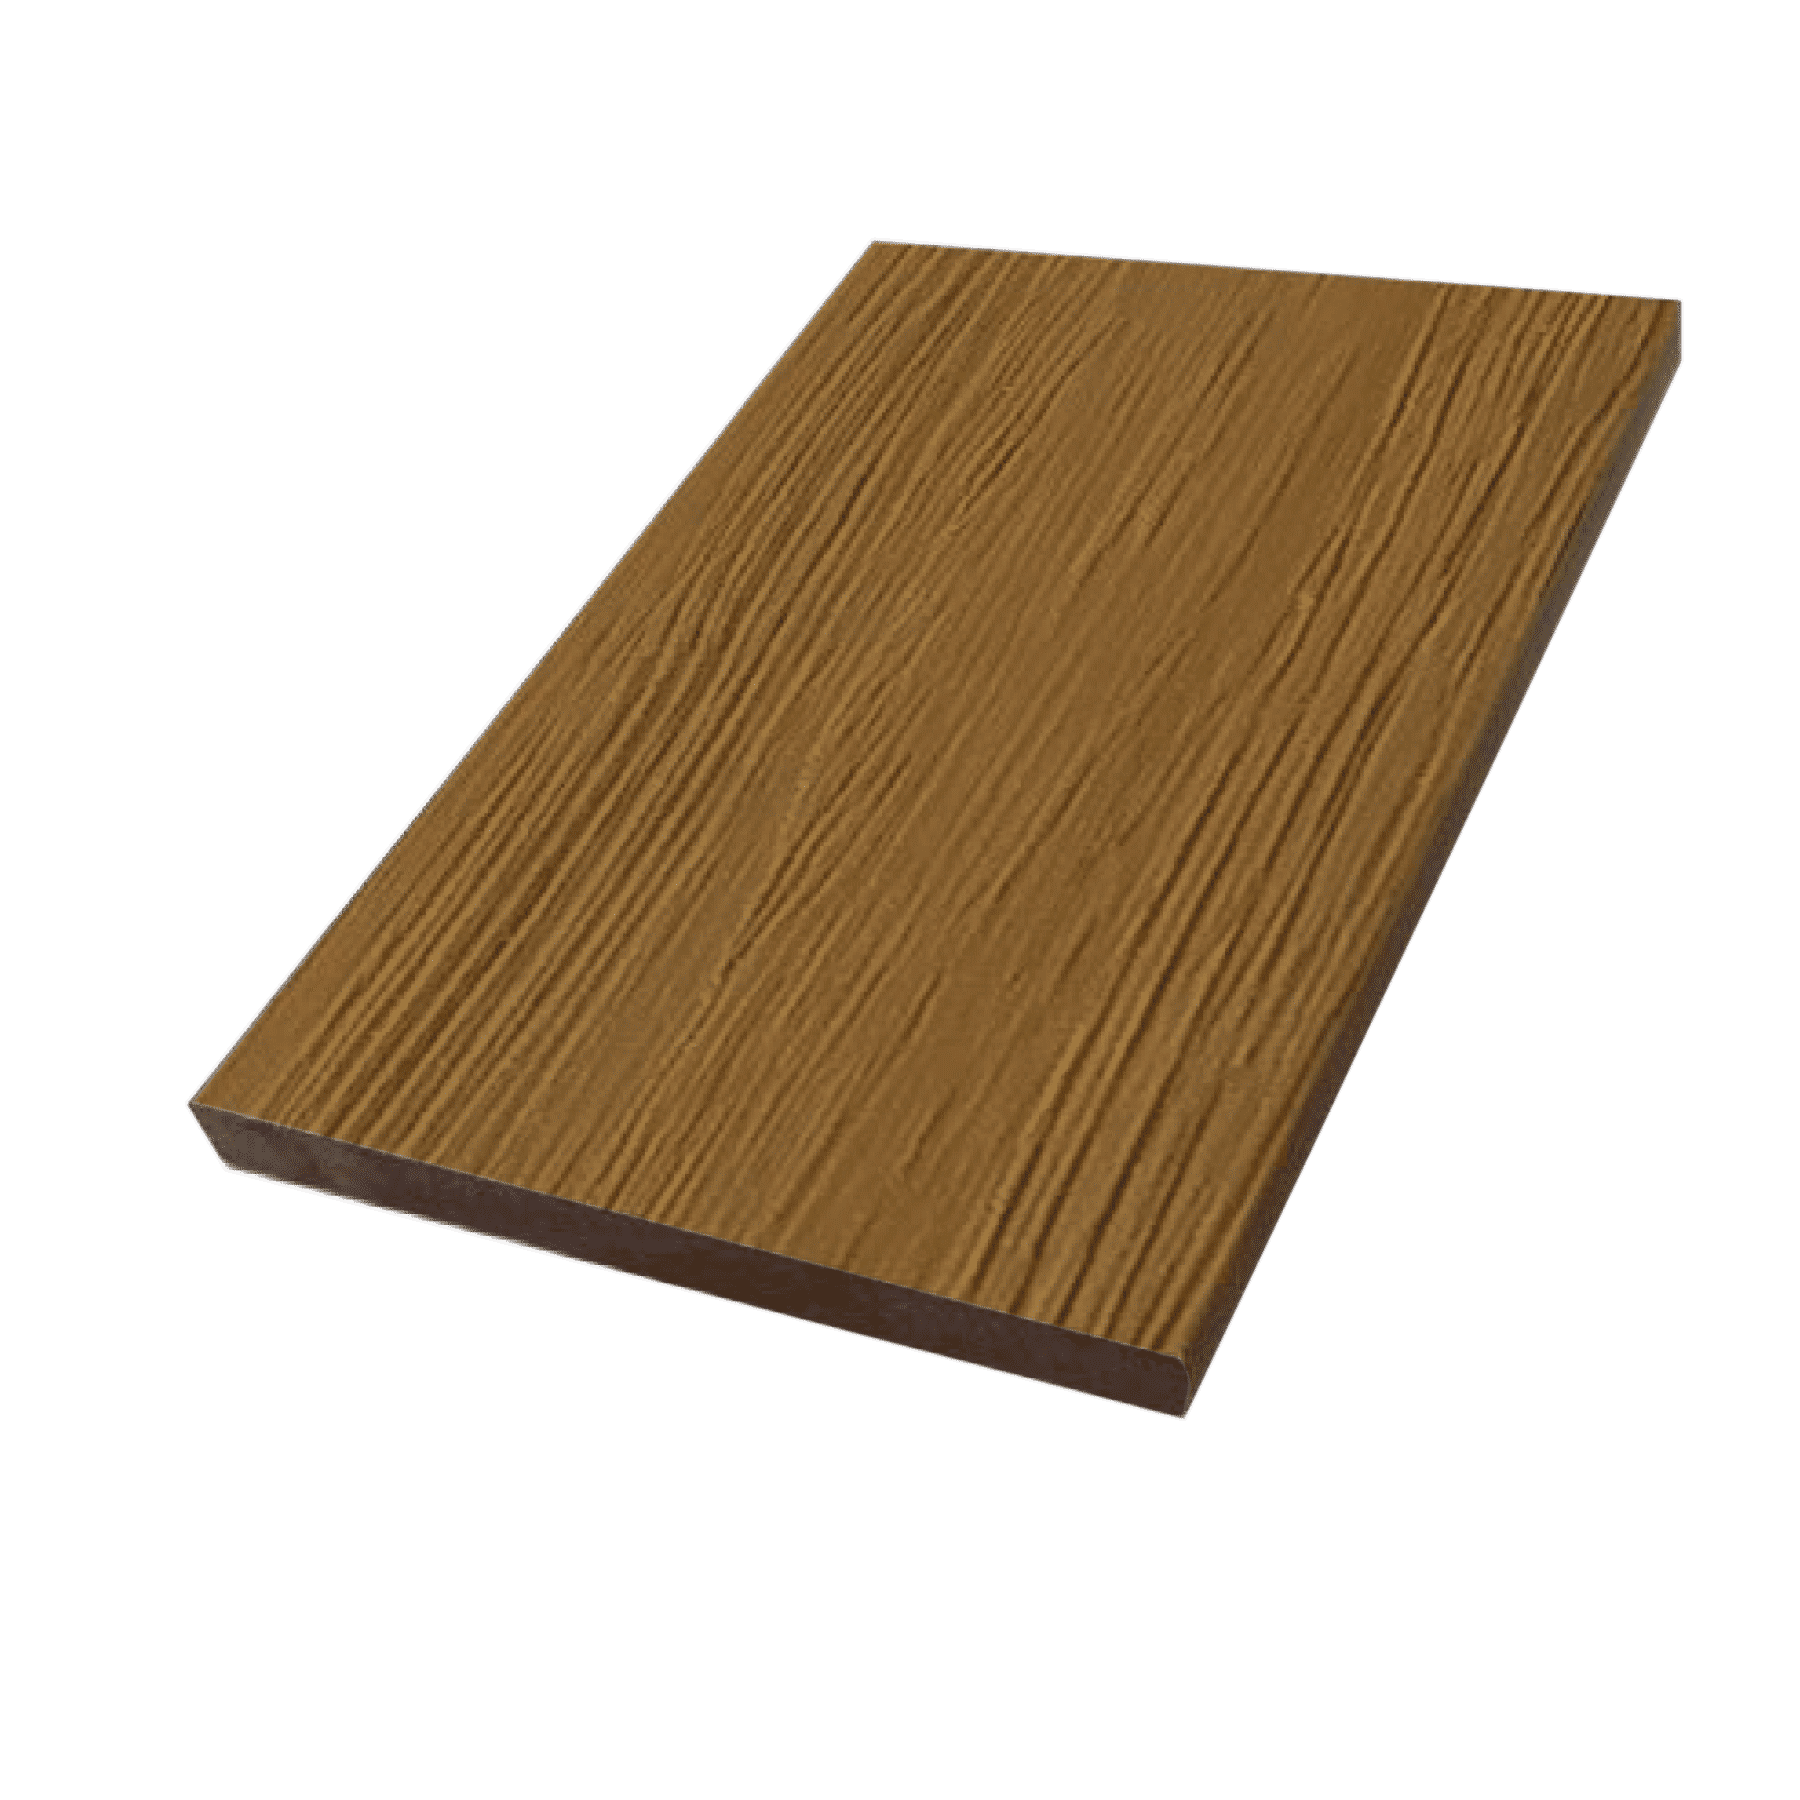 ISTGolden-Palm_Stair-tread-board-Carved_wood_grain_CL1-Finish_3D